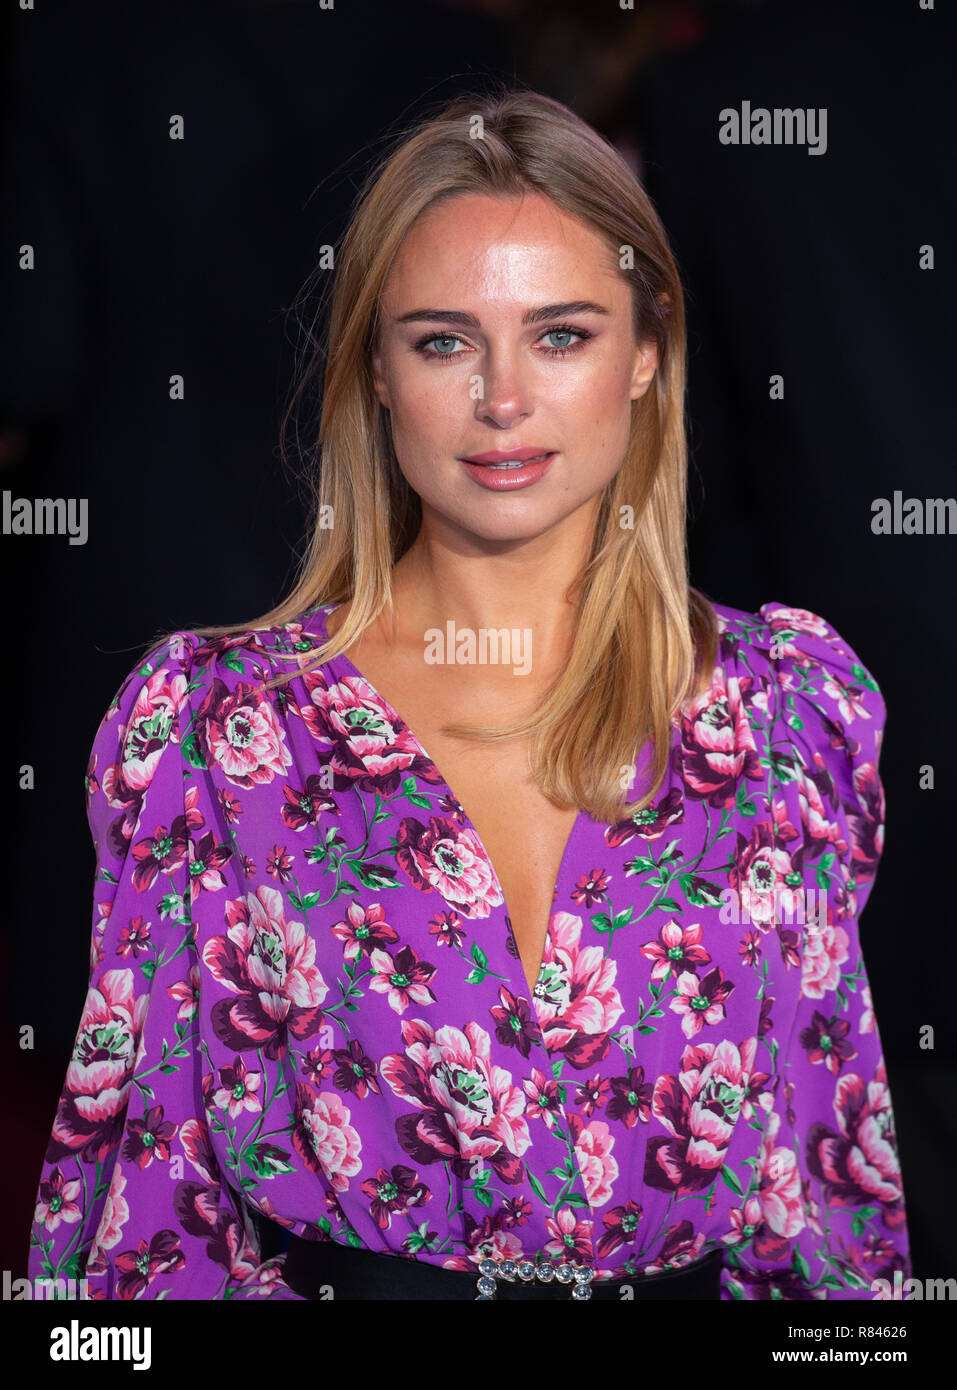 Kimberley Garner, Designer, actress and Television personality best known for 'Made in Chelsea' arrives at the Premiere of ' Mary Poppins Returns'. - Stock Image